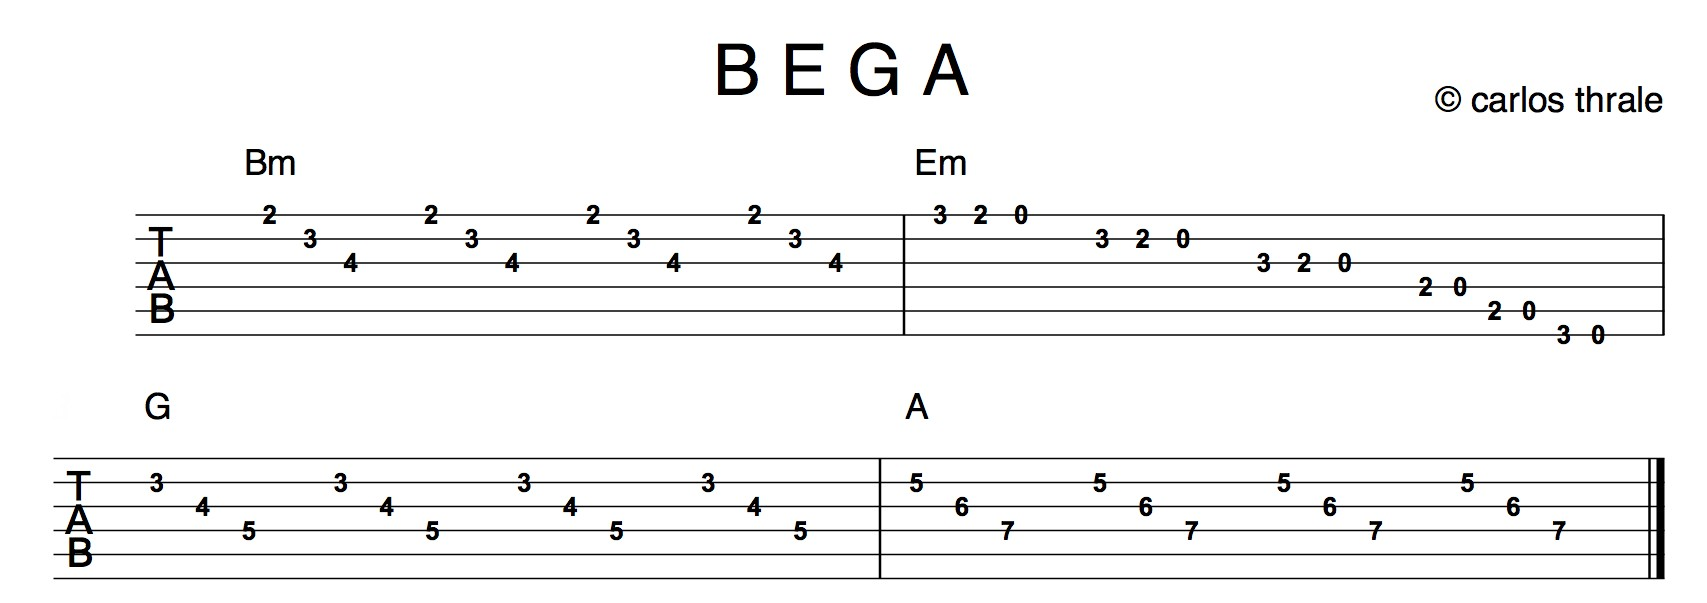 bega-diagram-1